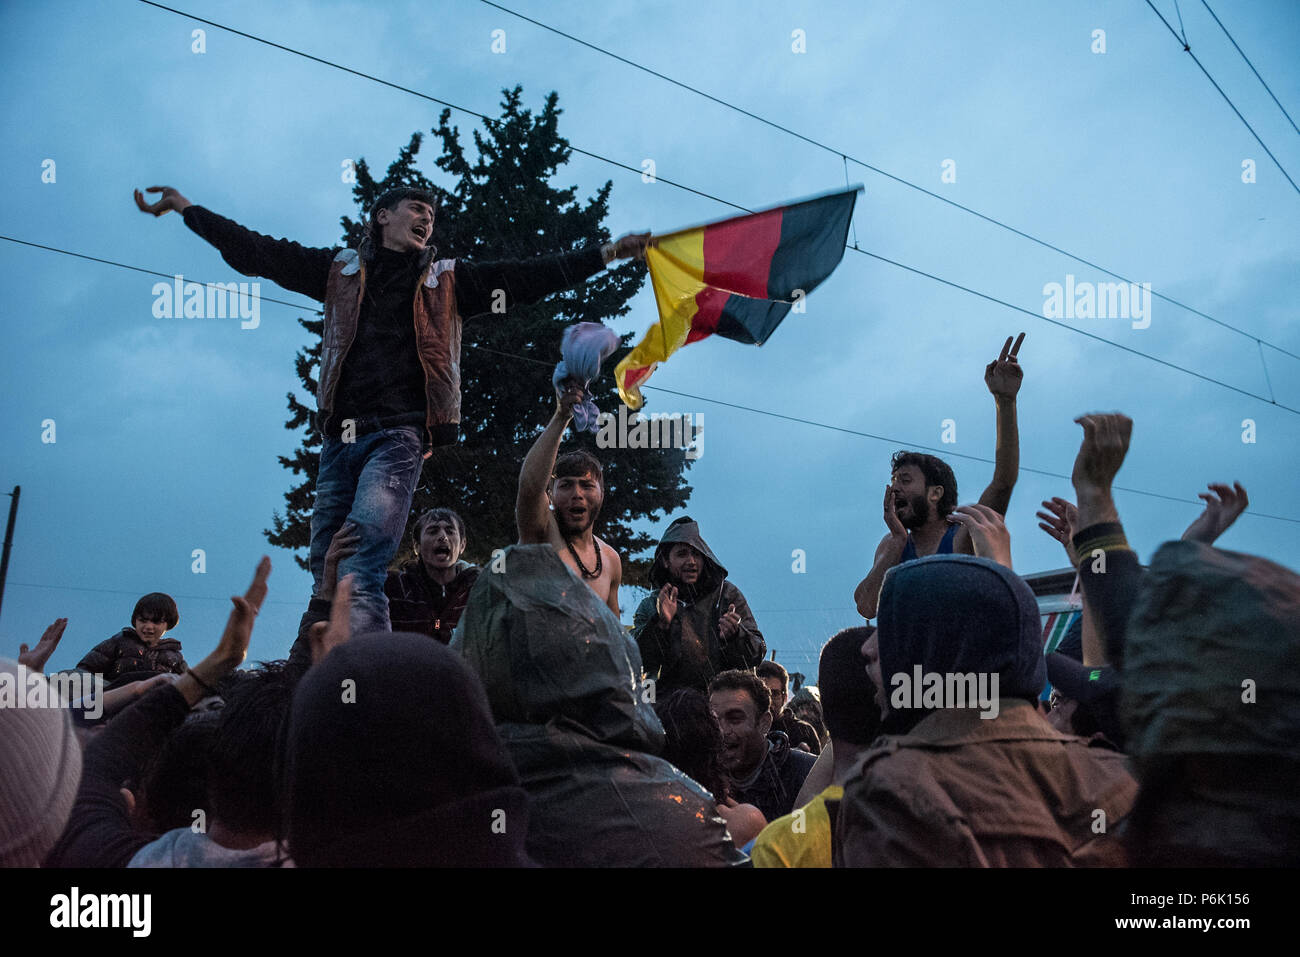 Refugees wave a German flag as they call for borders to be open and celebrated the support received from German Chancellor Angela Merkel at the makesh - Stock Image